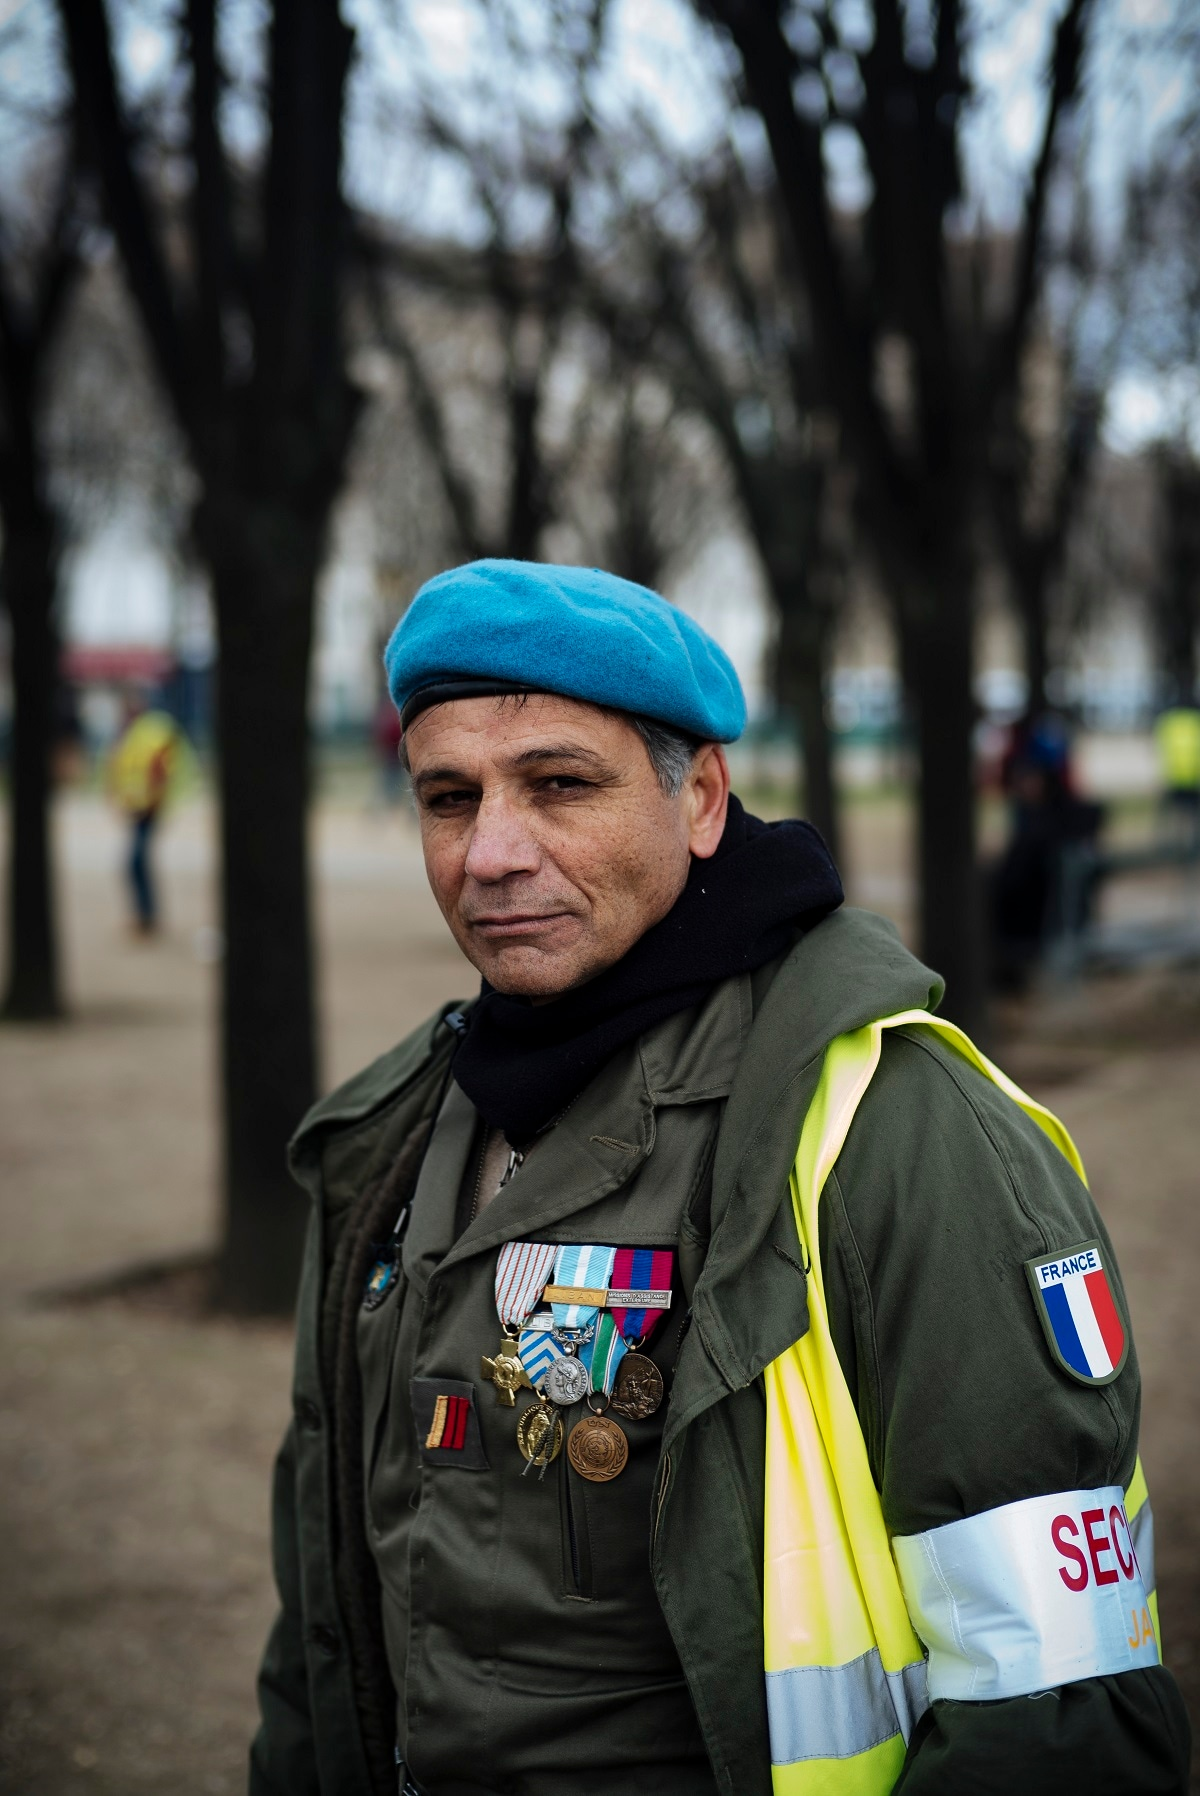 Christophe, 57, a former member of the military, from Montluçon, center France, poses for a portrait. (AP Photo/Kamil Zihnioglu)